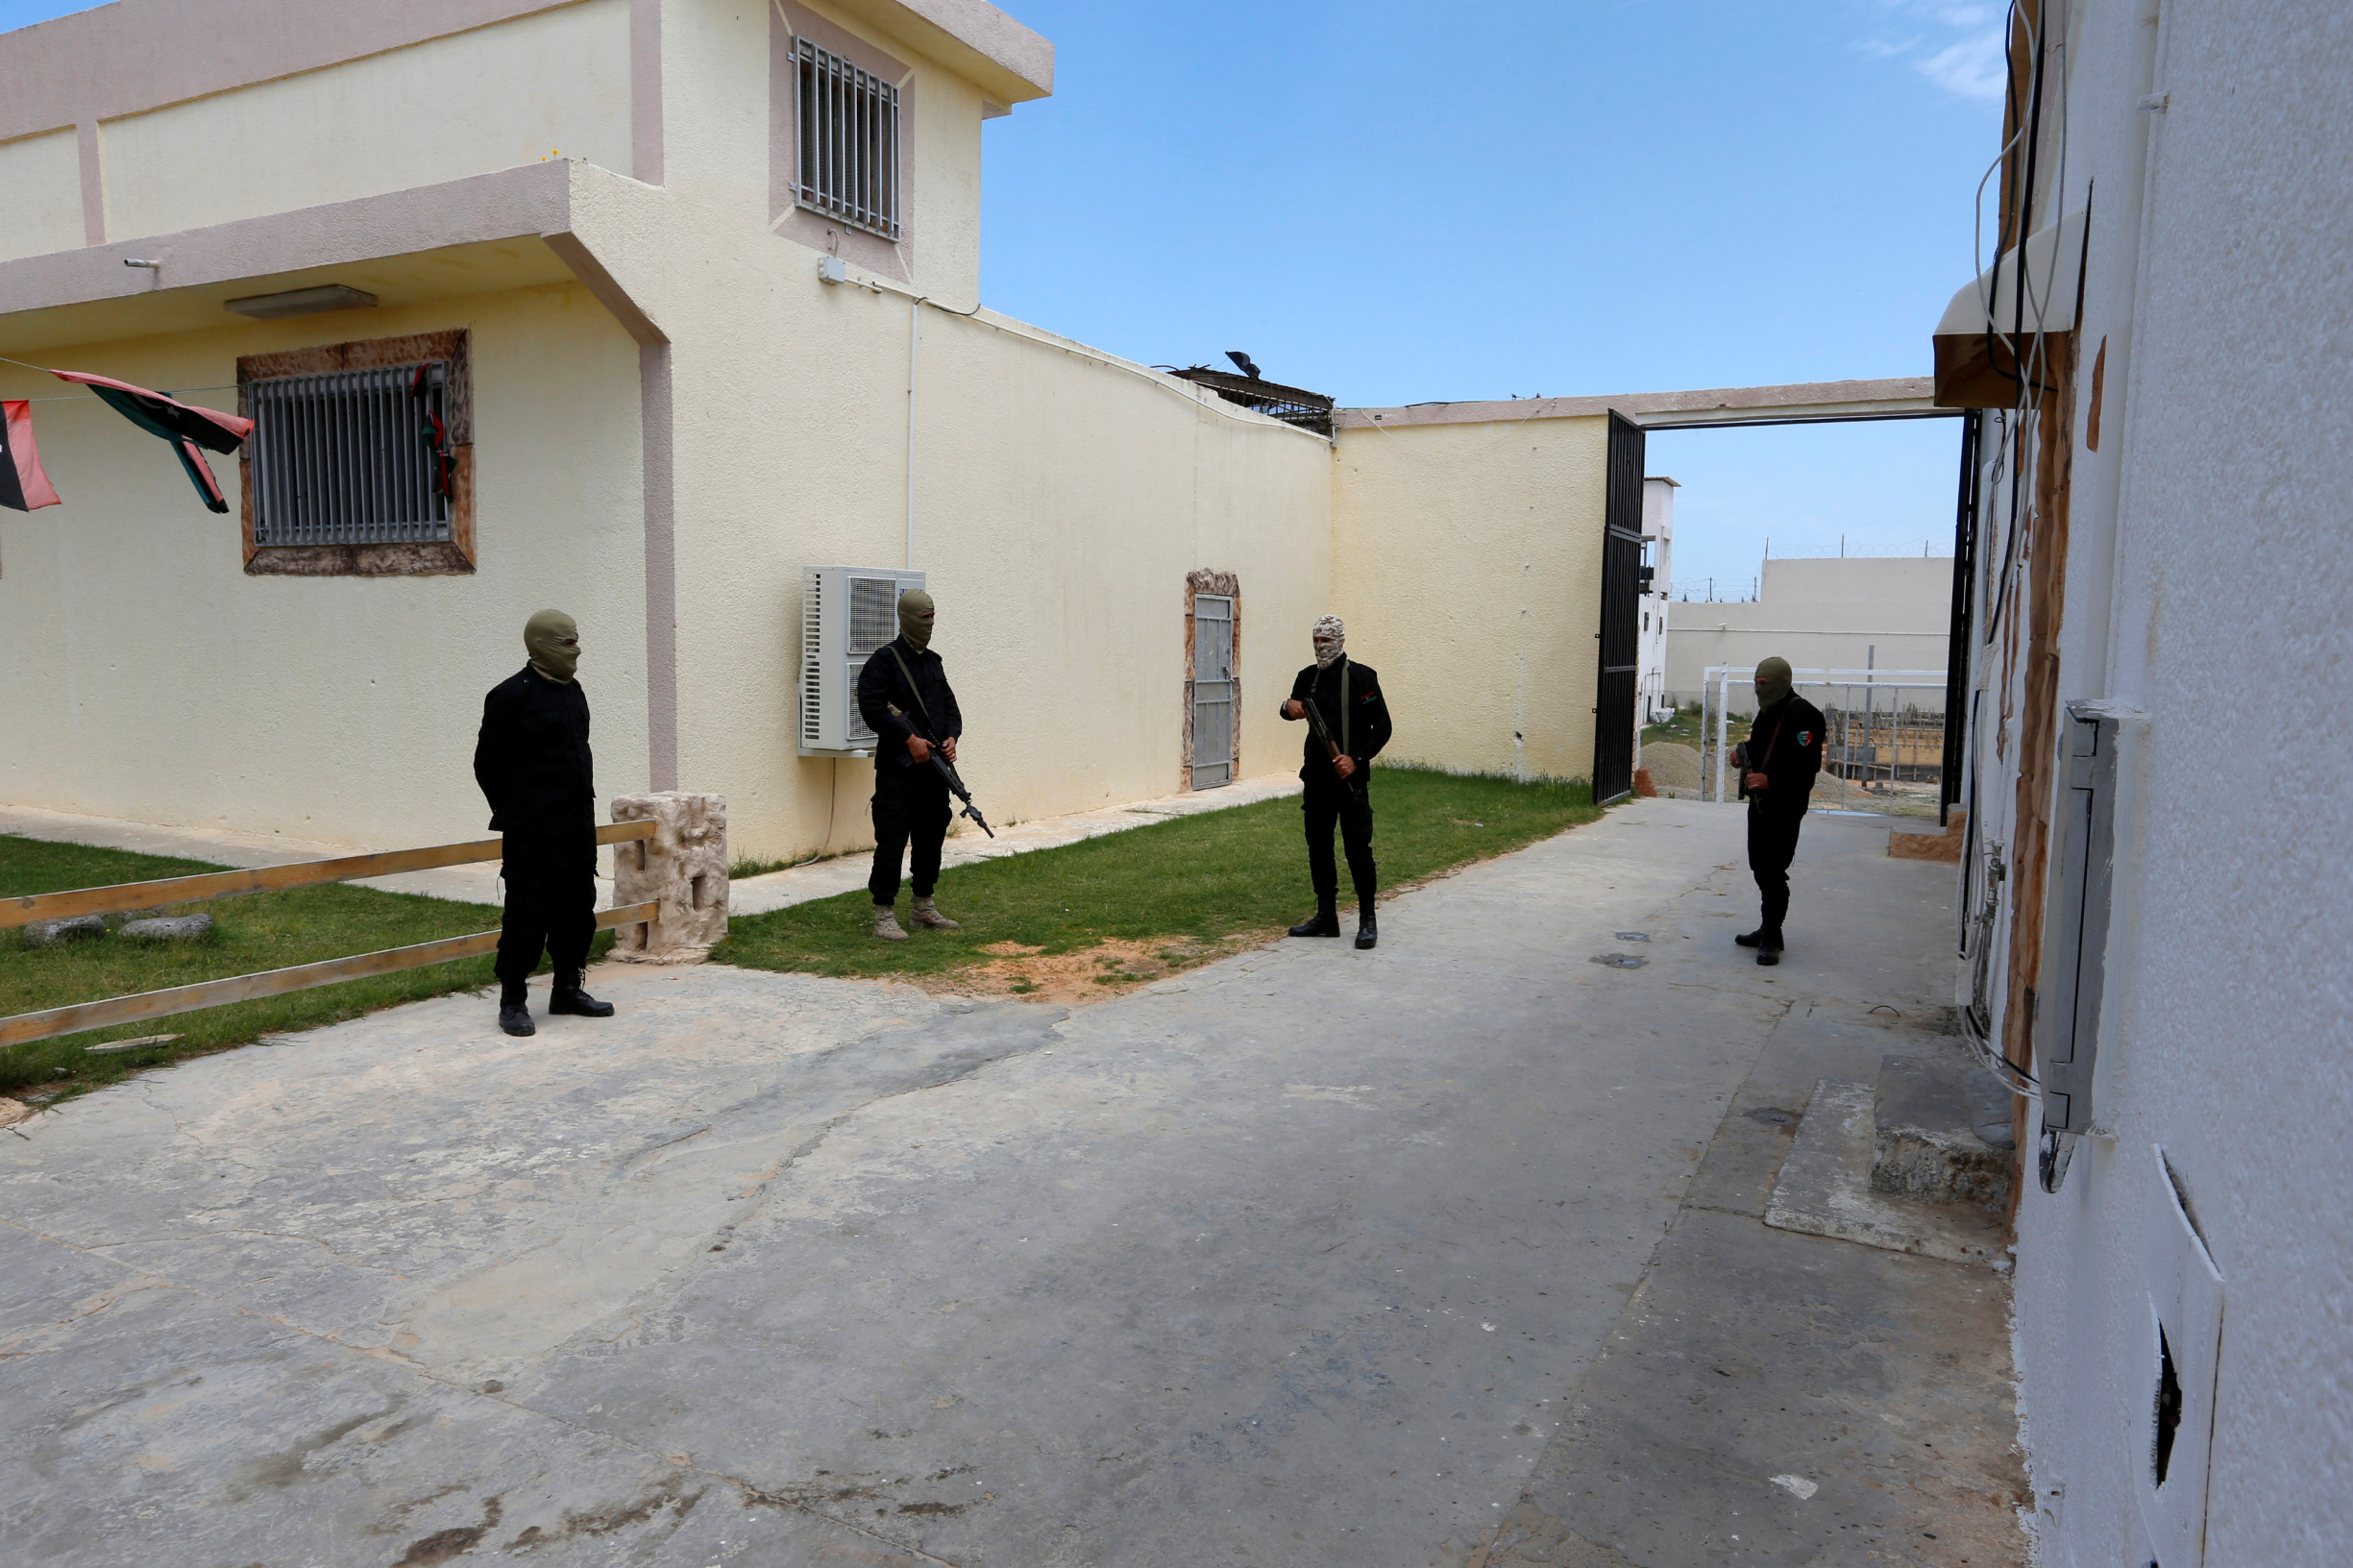 Guards belonging to the Libyan internationally recognized pro-government forces stand in front of a prison, where prisoners from eastern Libyan forces are being held in Ain Zara, south of Tripoli, Libya April 11, 2019. REUTERS/Ismail Zitouny - RC14FB4A3E30